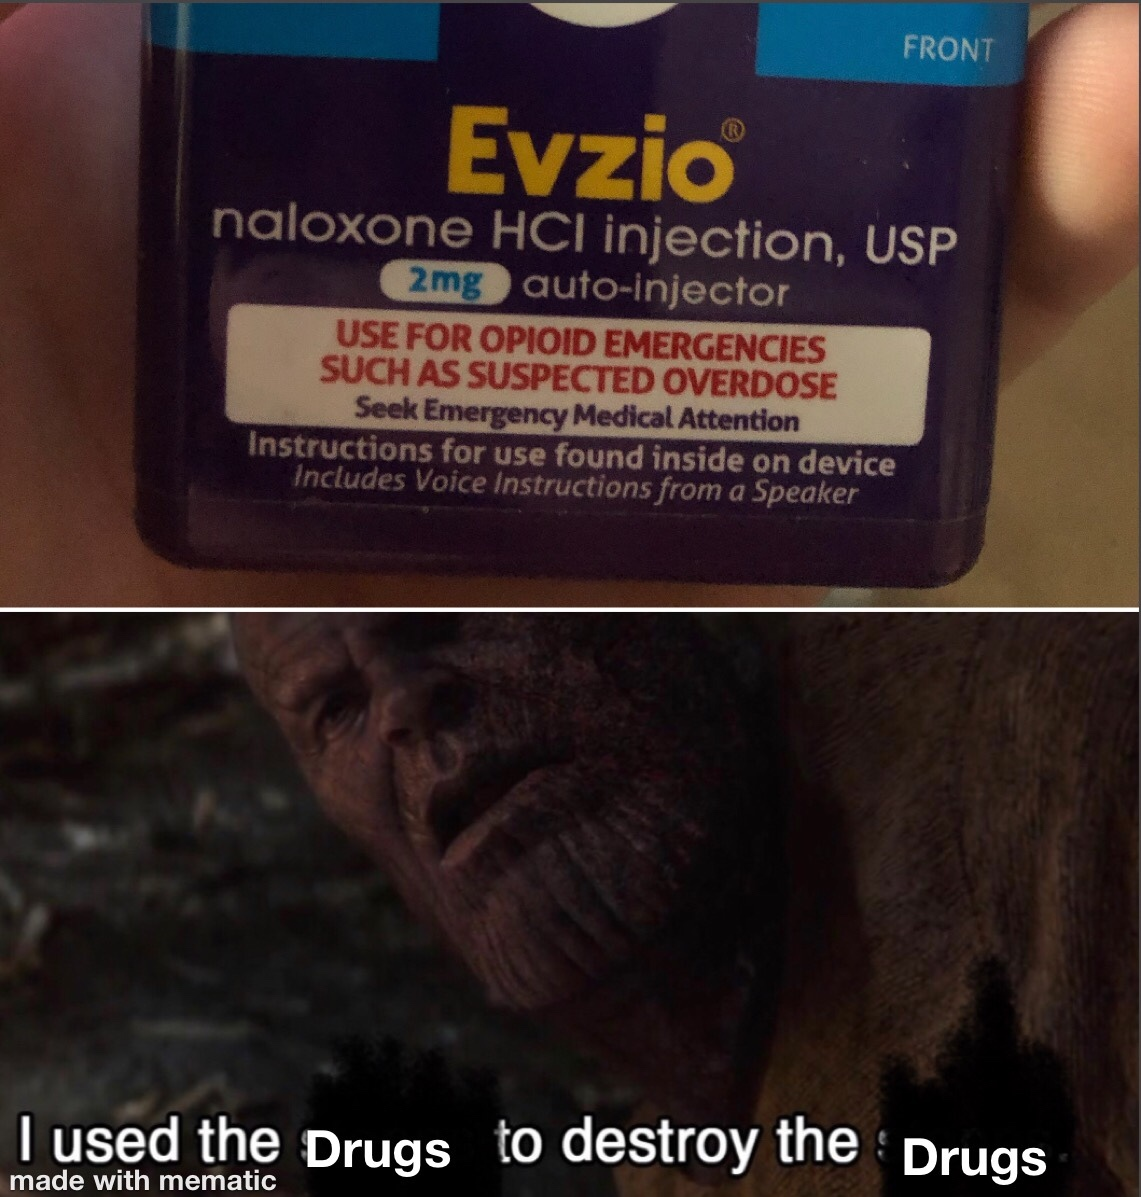 I used the drugs to destroy the drugs - meme